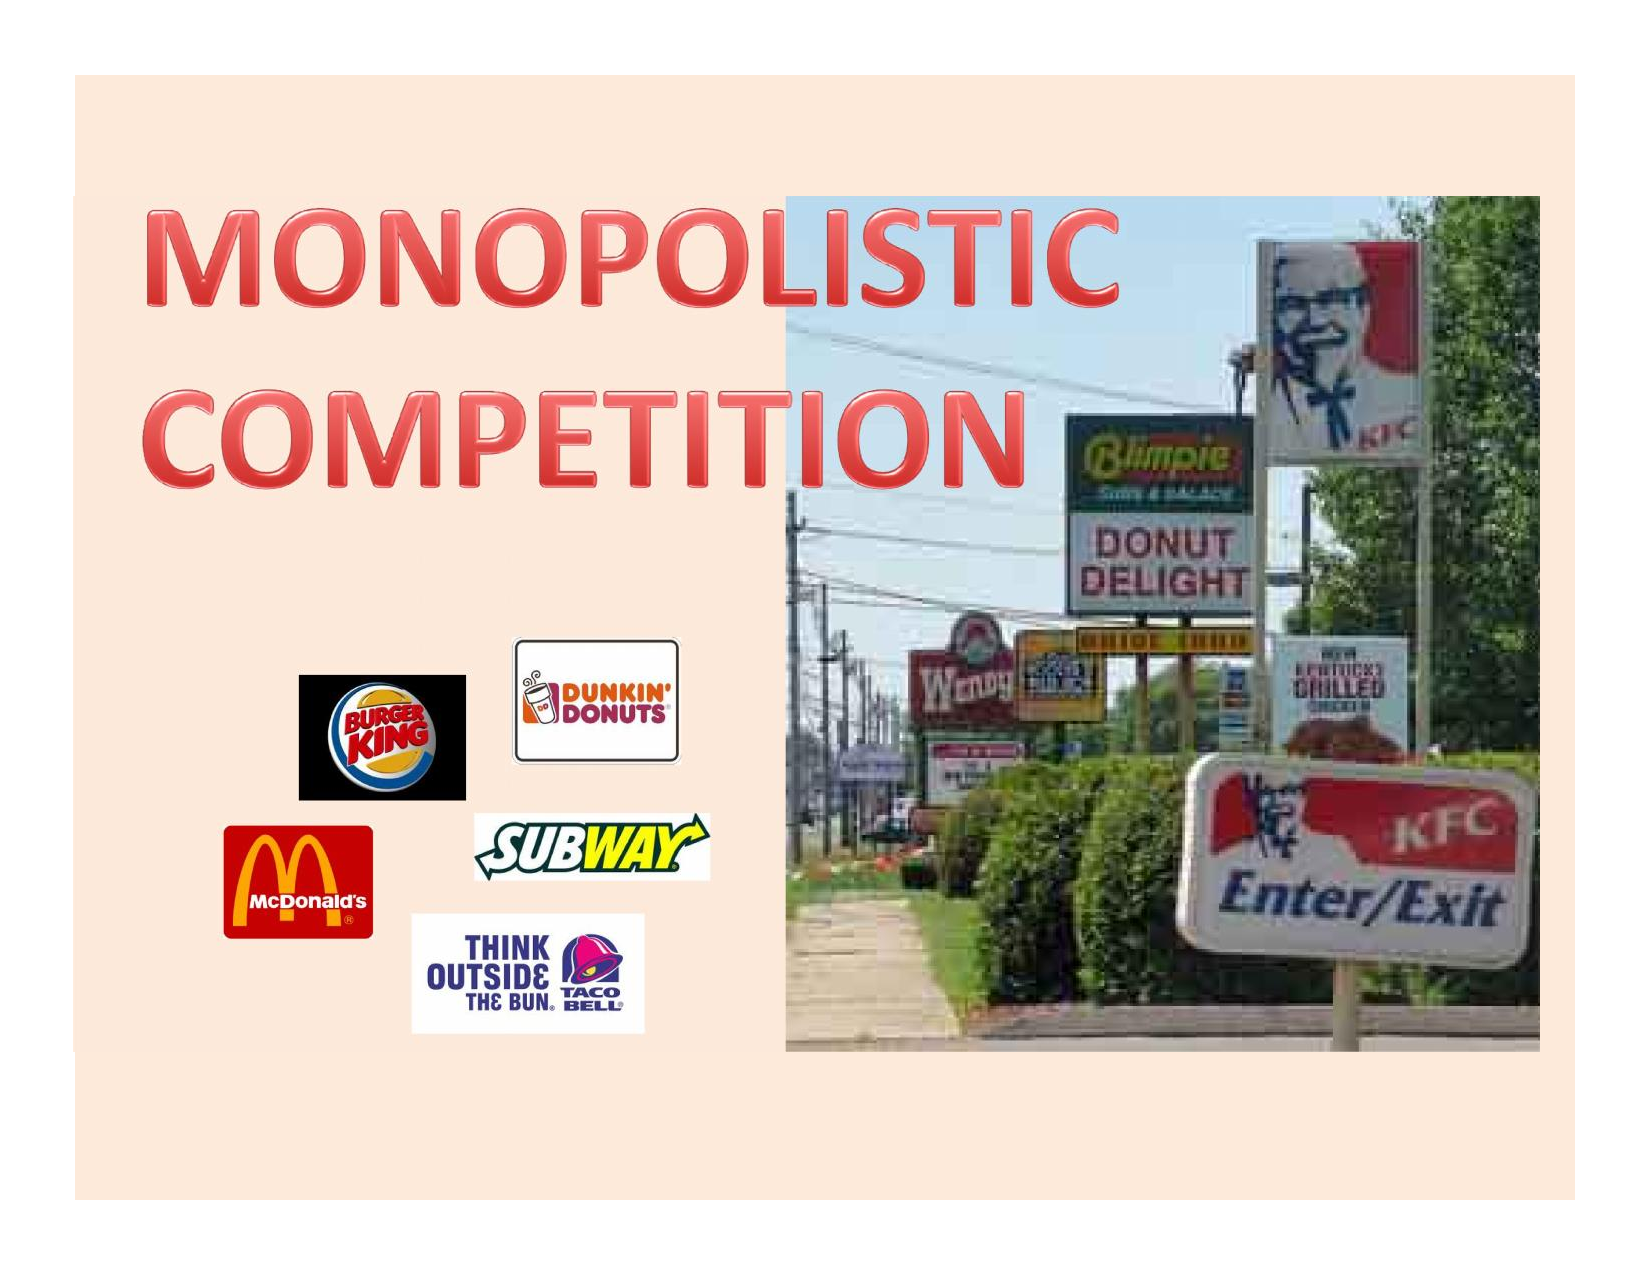 example of a monopoly firm This video tutorial looks at examples of industries where one or more firms has significant monopoly (market) power it is an introduction to monopoly ahead of the the main analysis of price, output and profit in monopolistic markets join 1000s of fellow economics teachers and students all getting .